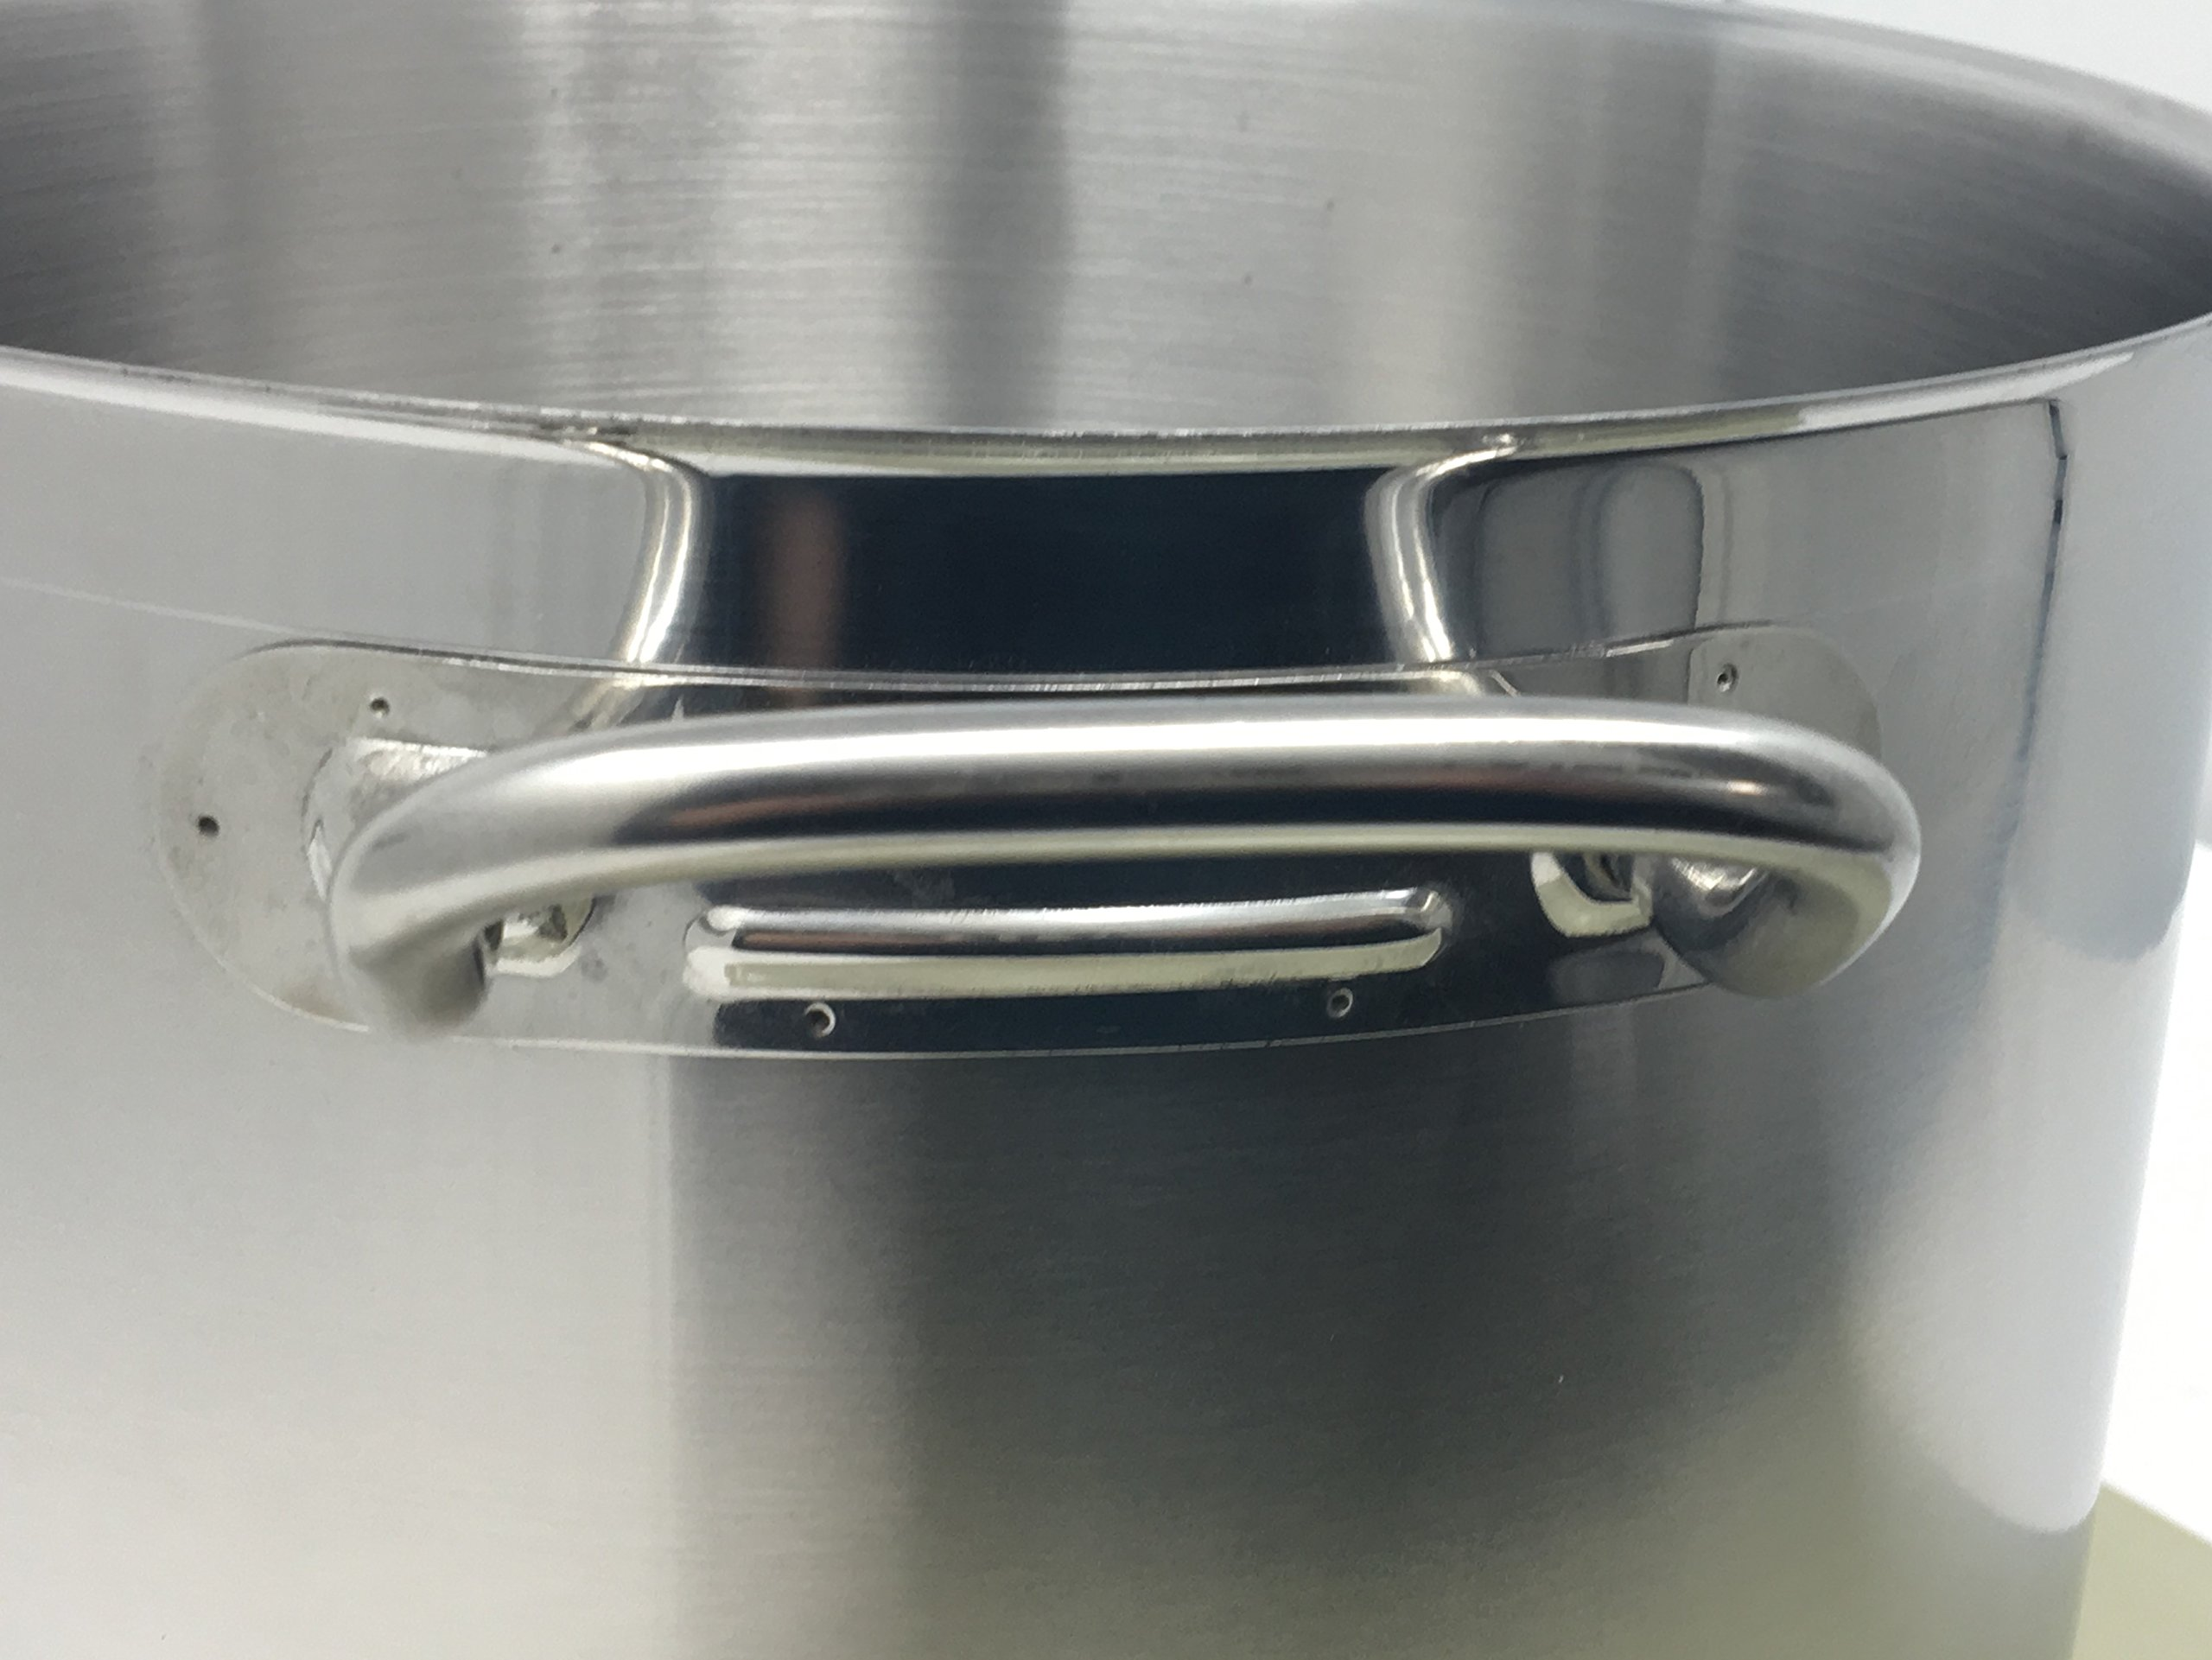 Update International (SPS-40) 40 Qt Induction Ready Stainless Steel Stock Pot w/Cover by Update International (Image #2)